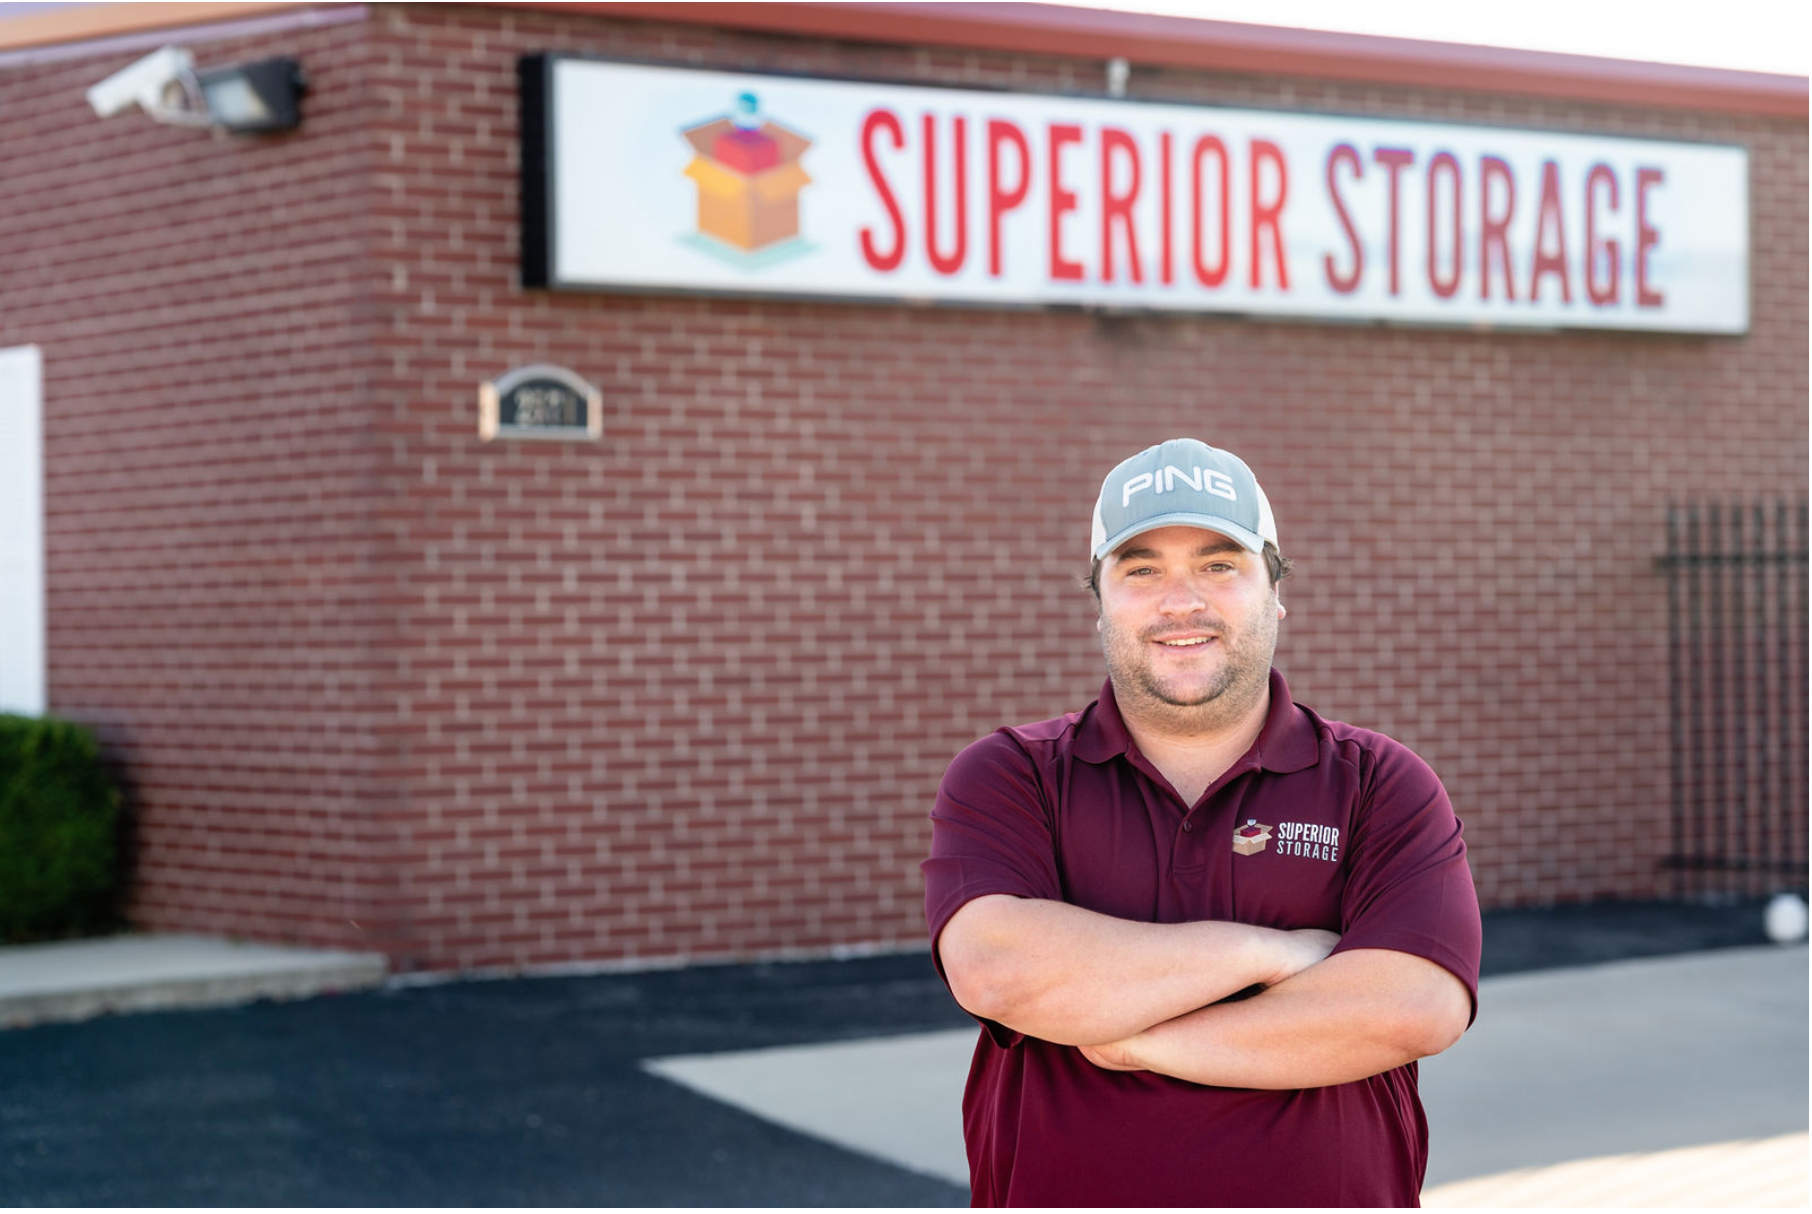 Superior Storage - Robinson Ave